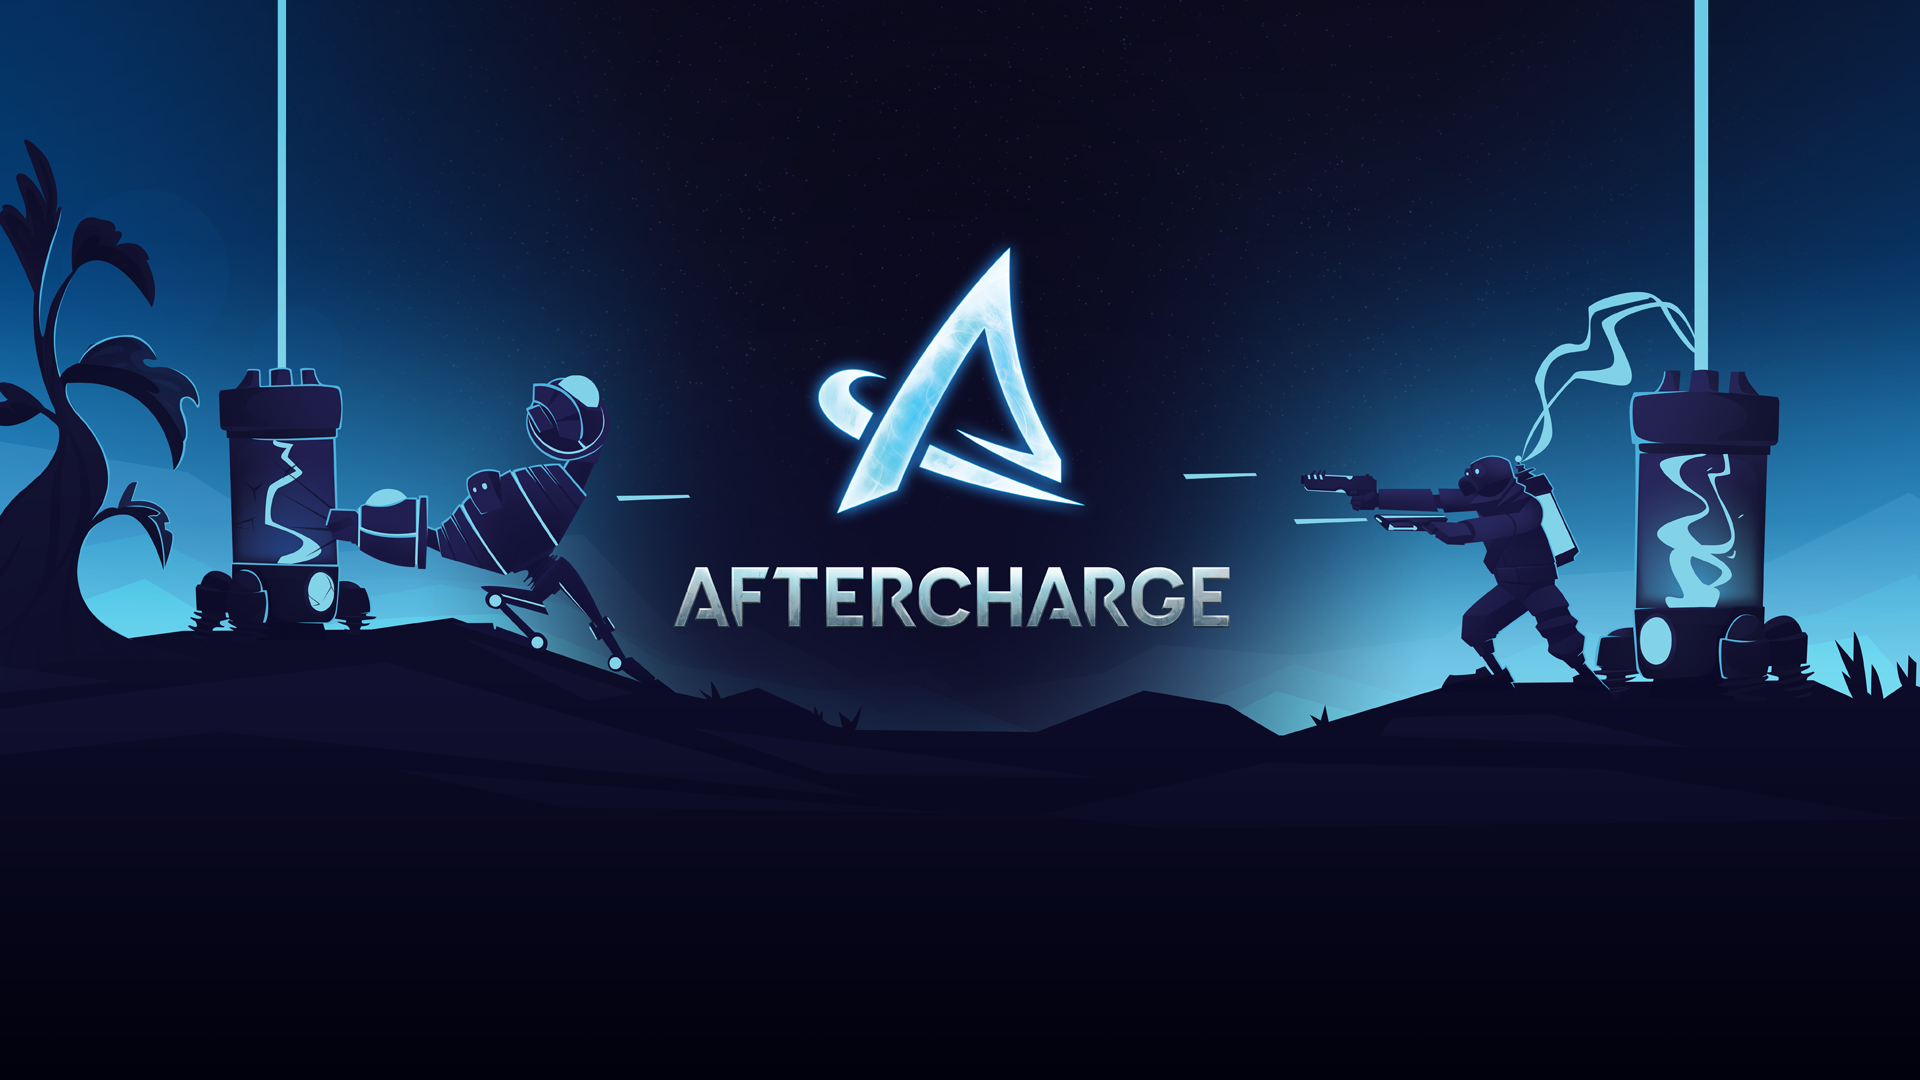 Get ready for Aftercharge!